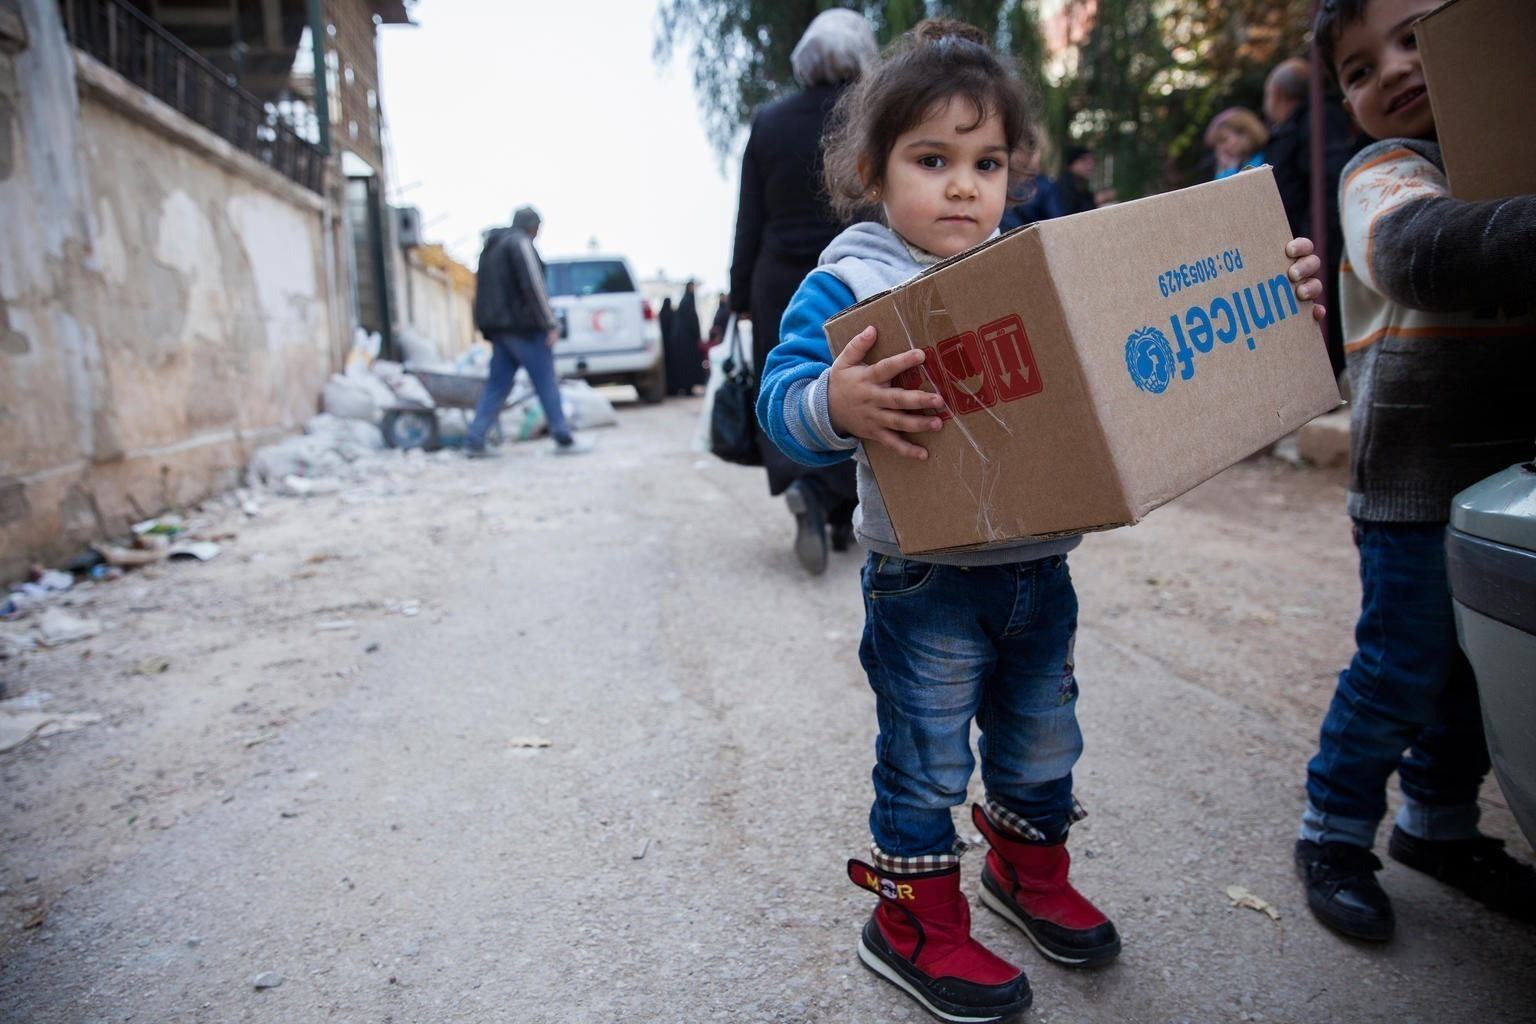 A little girl with UNICEF aids in Syria